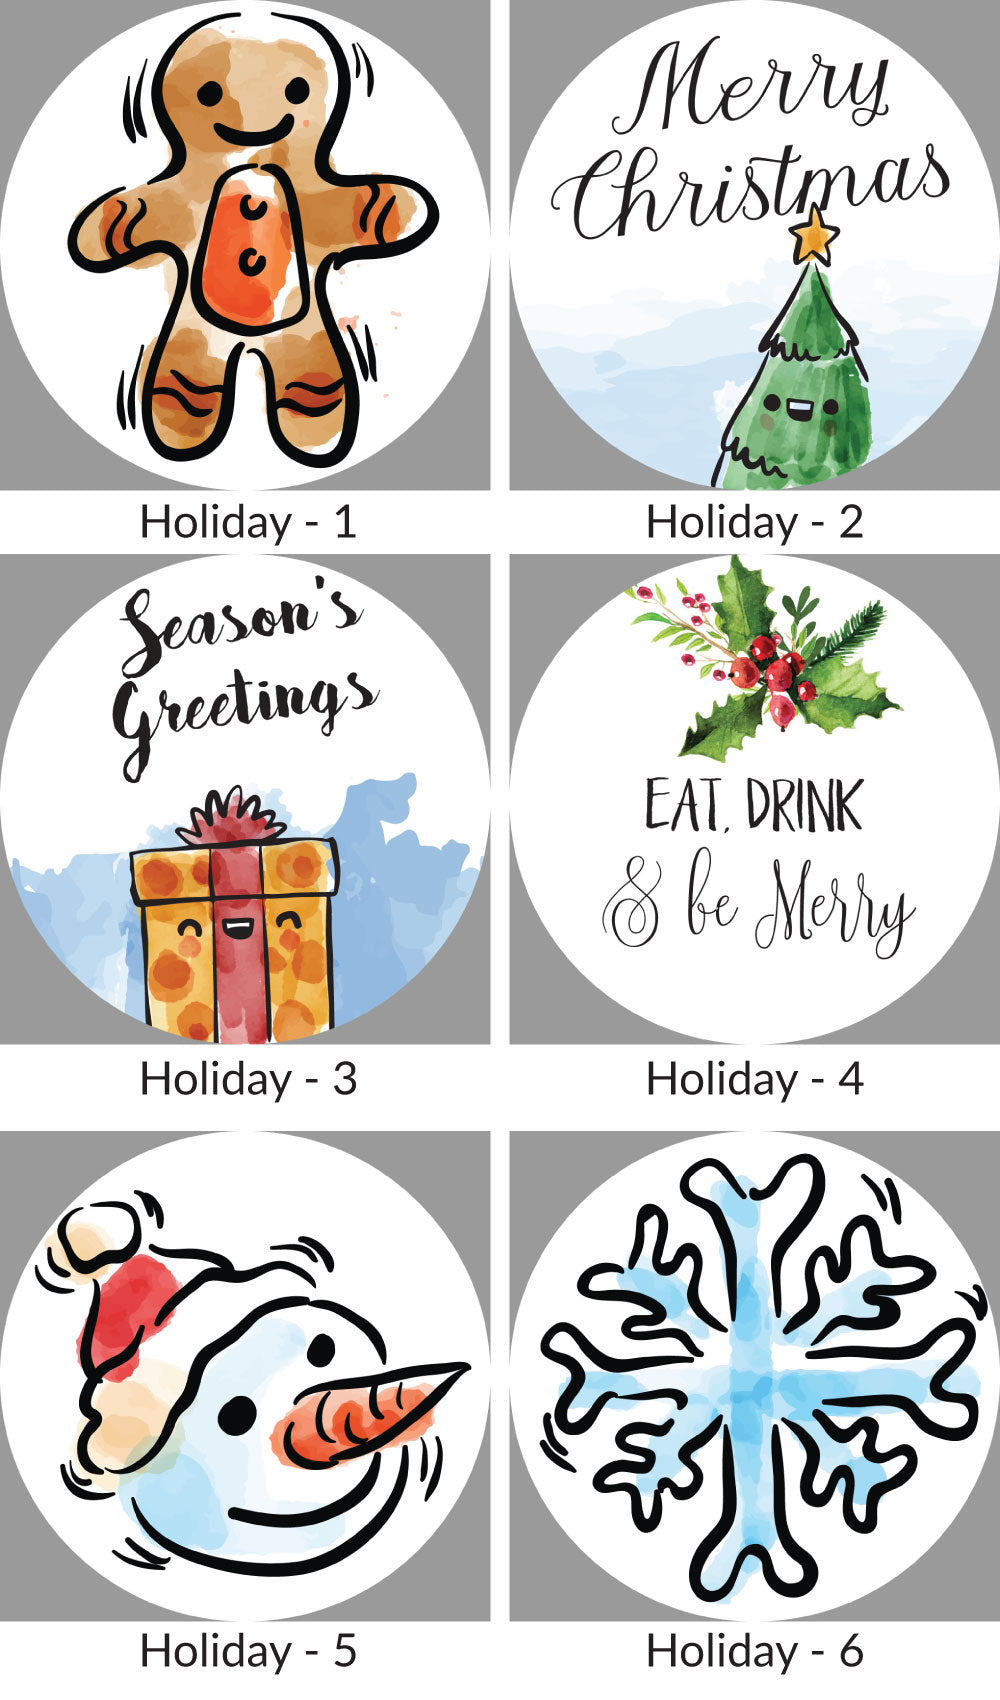 2.5 Inch Circle Personalized Holiday and Christmas Present Stickers Tags and Envelope Seals (Pre-Set Designed, 24 Labels) - PaperLanternStore.com - Paper Lanterns, Decor, Party Lights & More